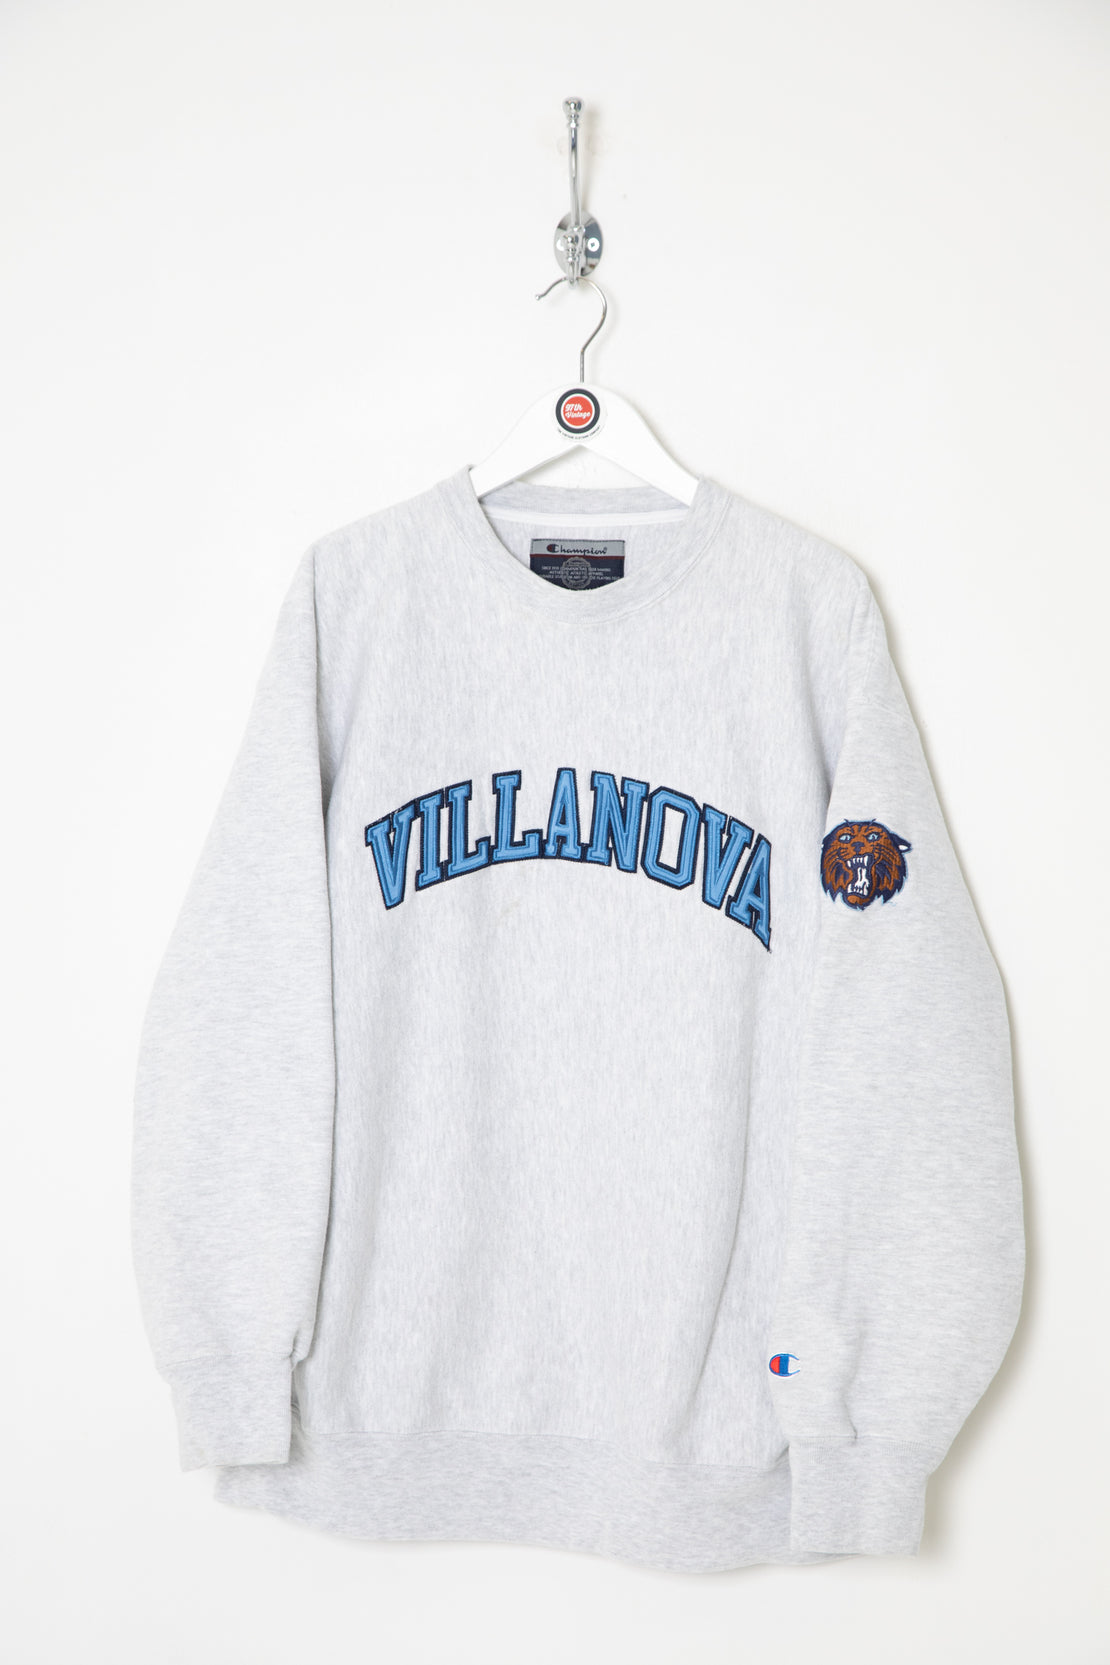 Champion Villanova Sweatshirt (L)